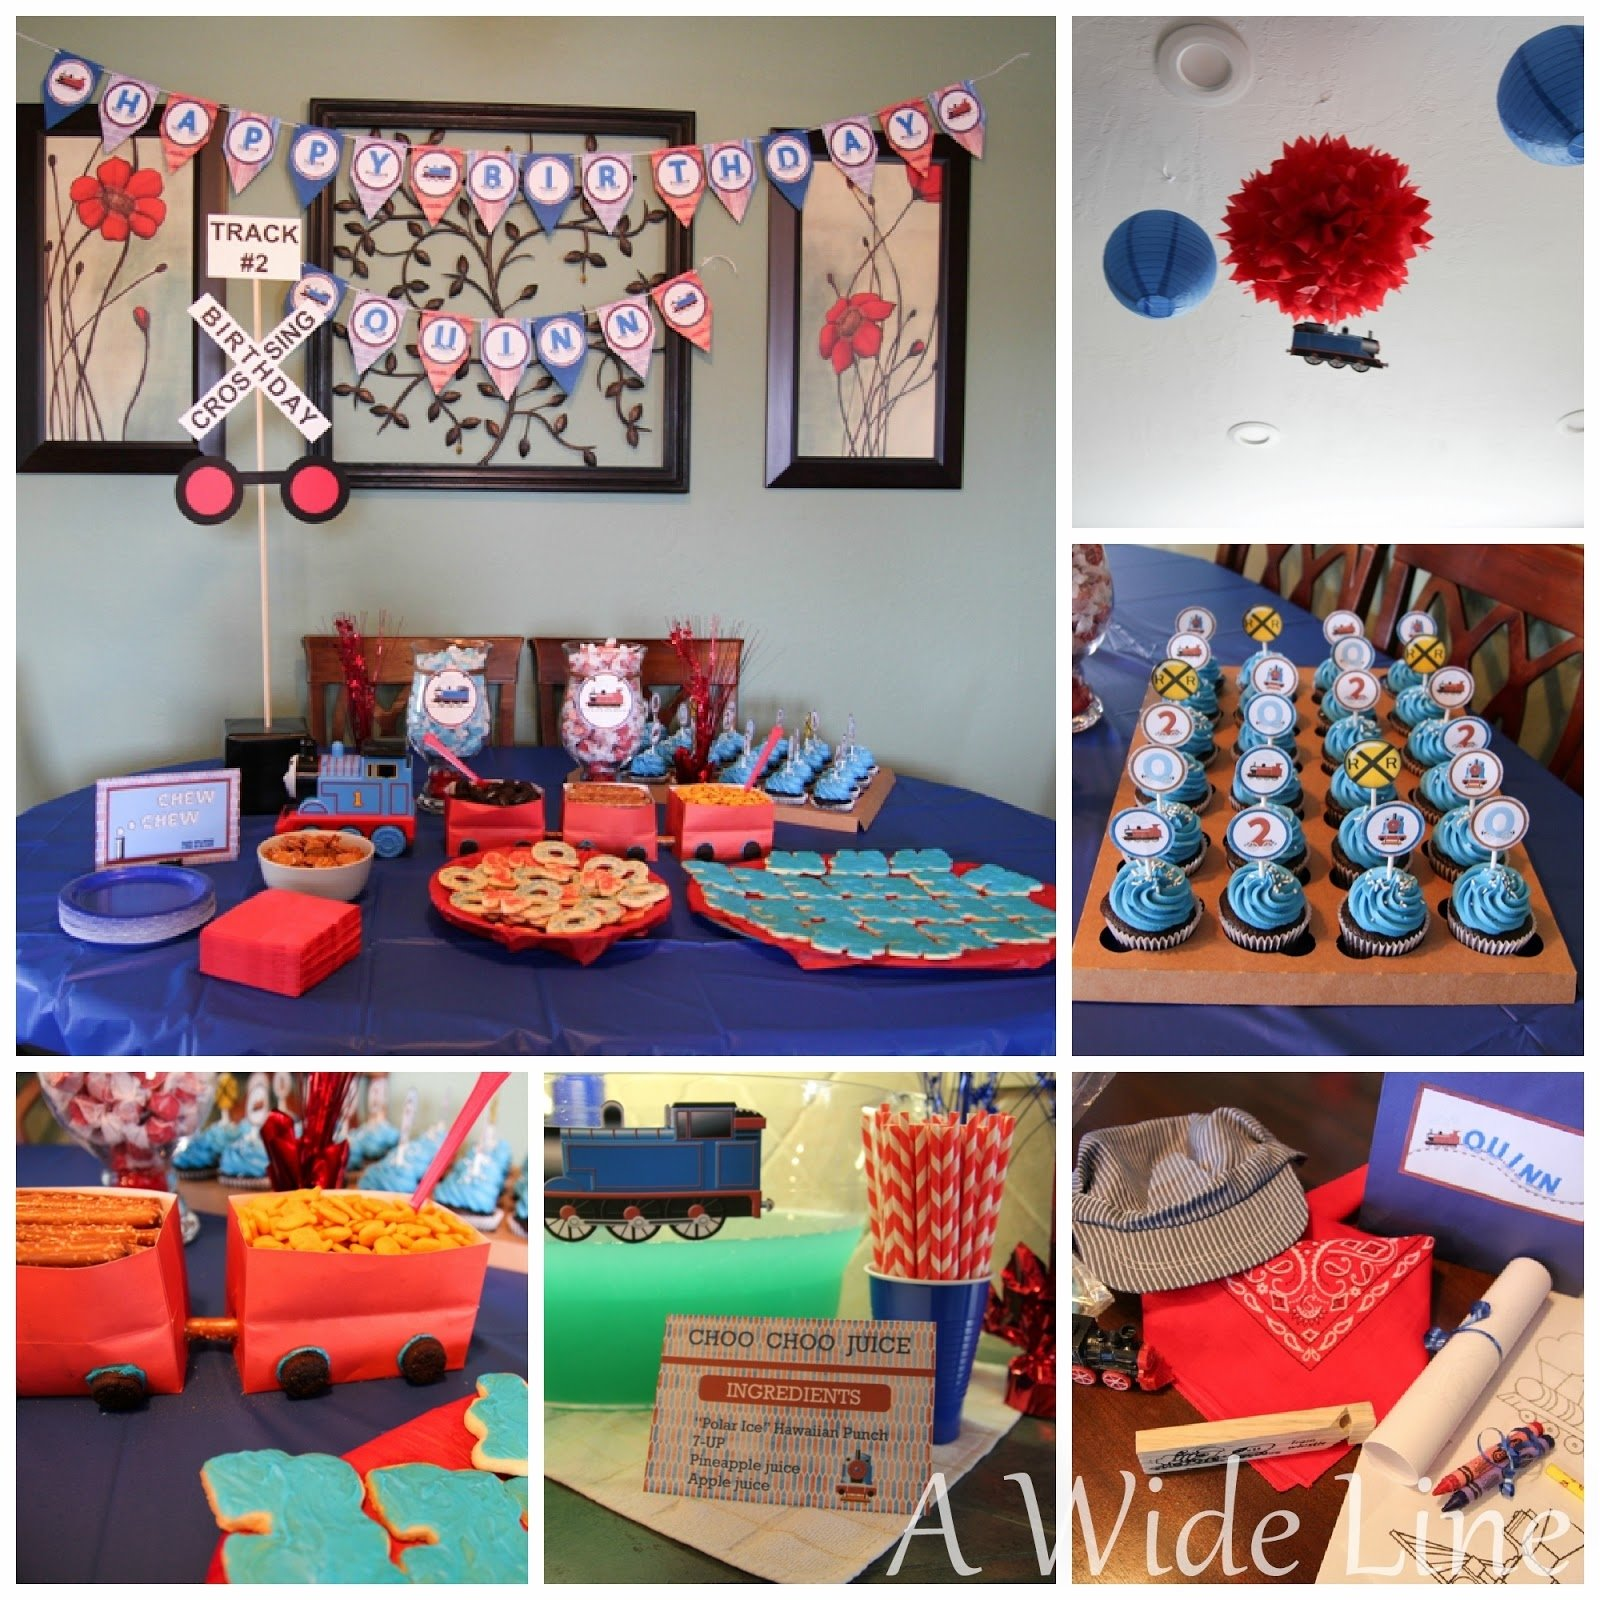 a wide line: diy train-themed birthday party